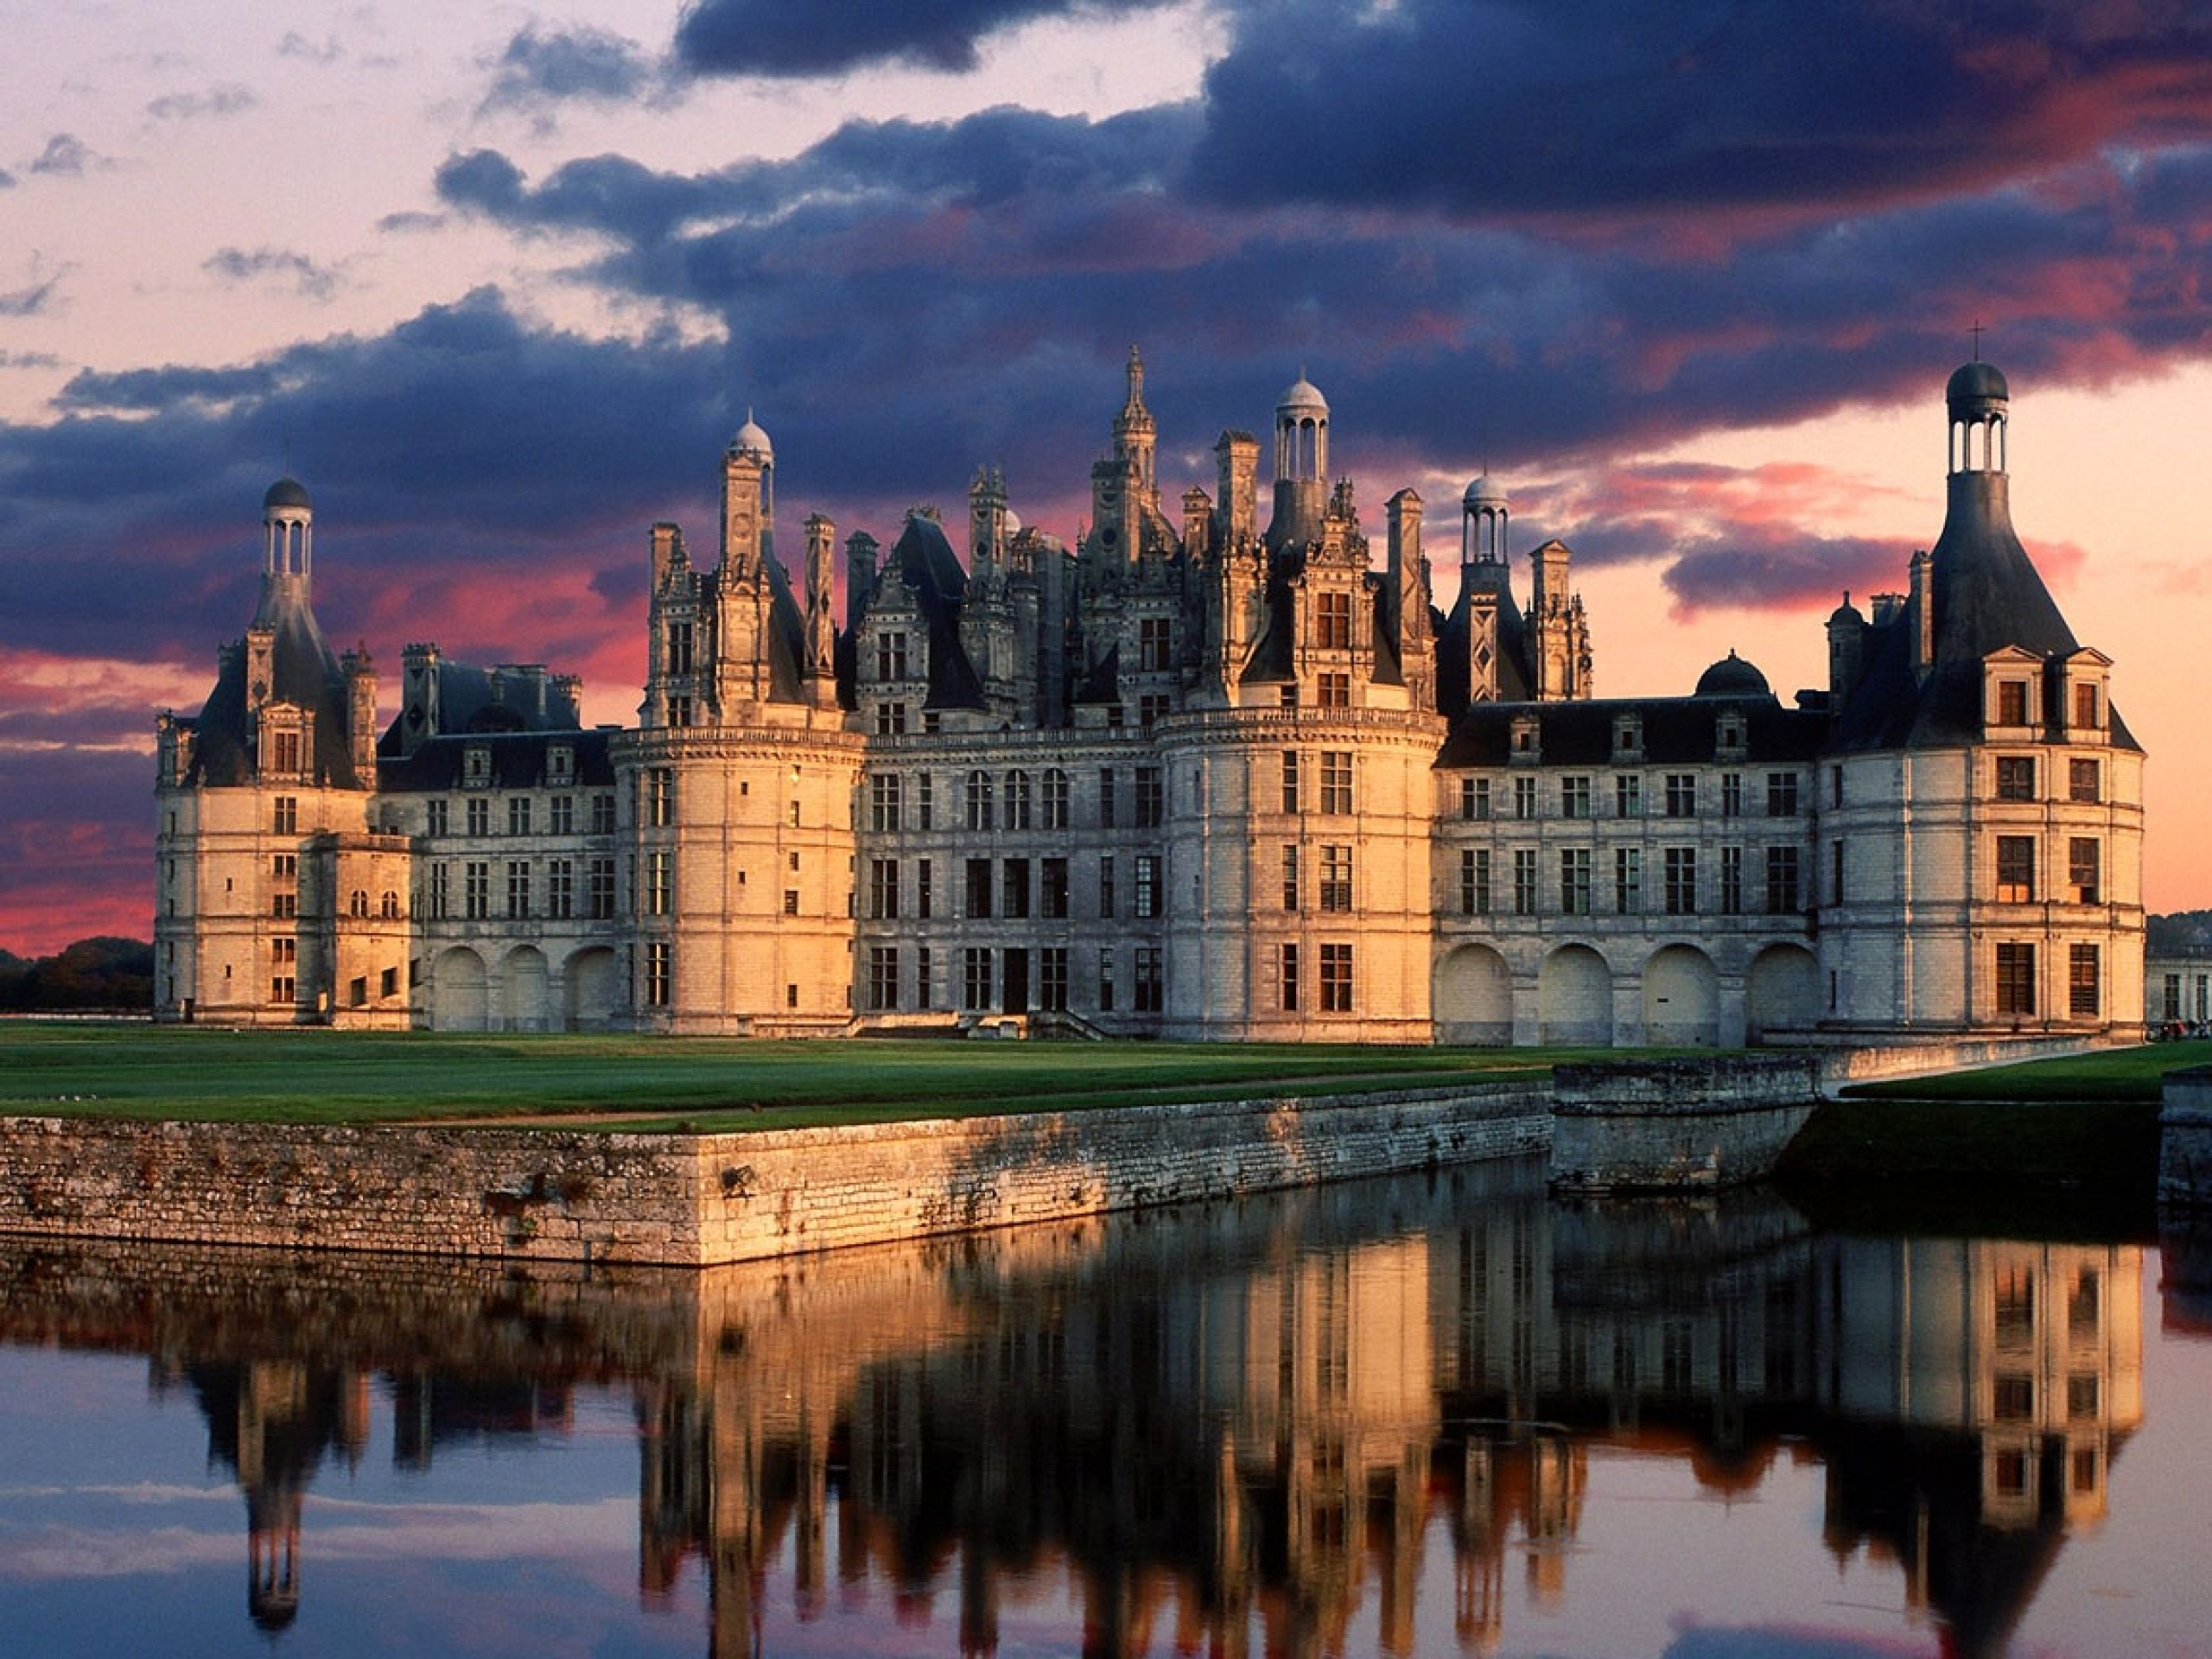 castles_france_chambord_reflections_1152x864_wallpaper_Wallpaper_2560x1920_www.wallpaperswa.com